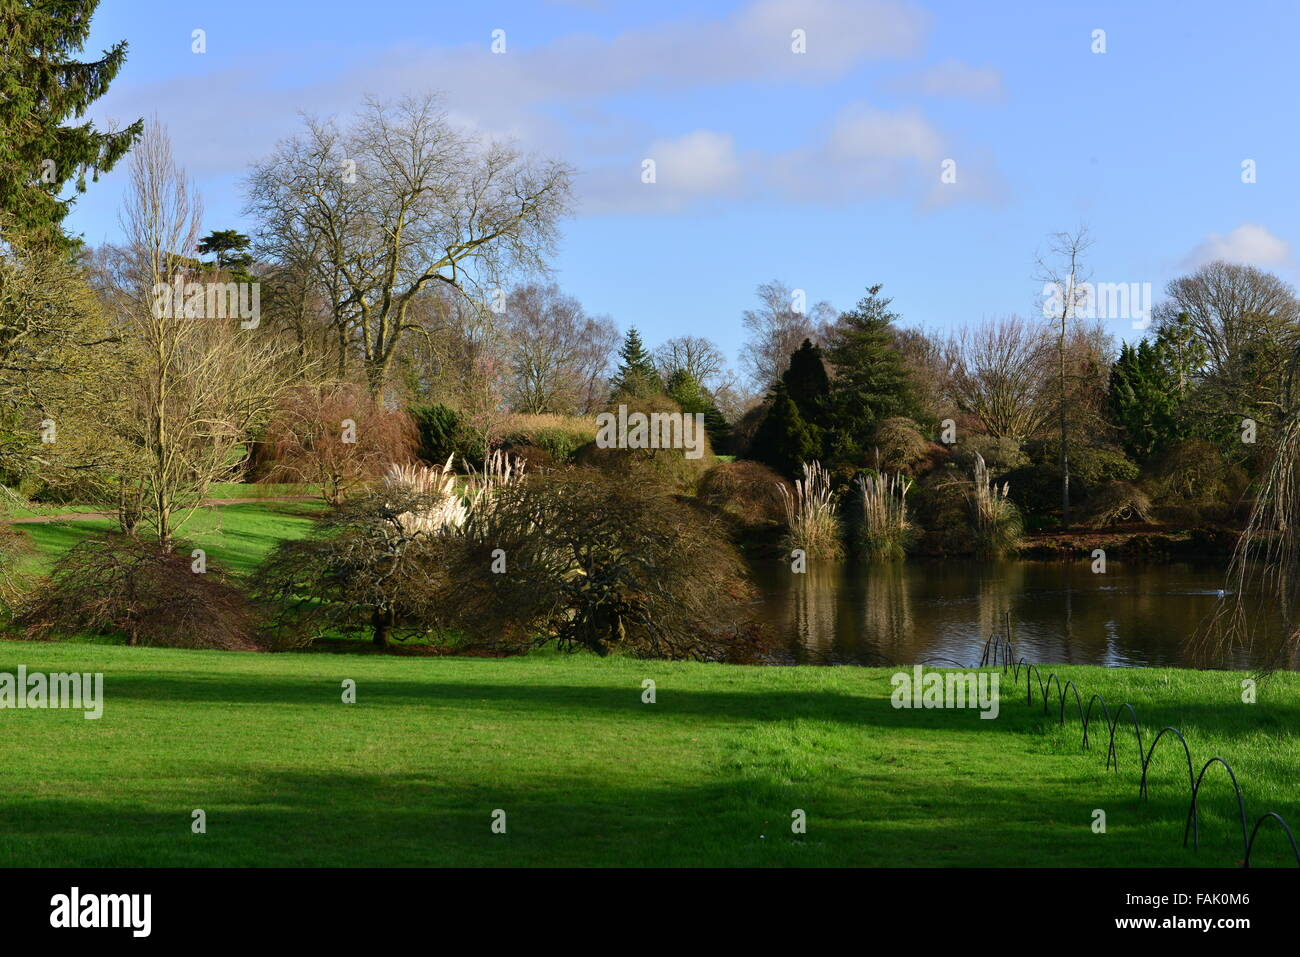 English country garden in winter Stock Photo: 92616054 - Alamy